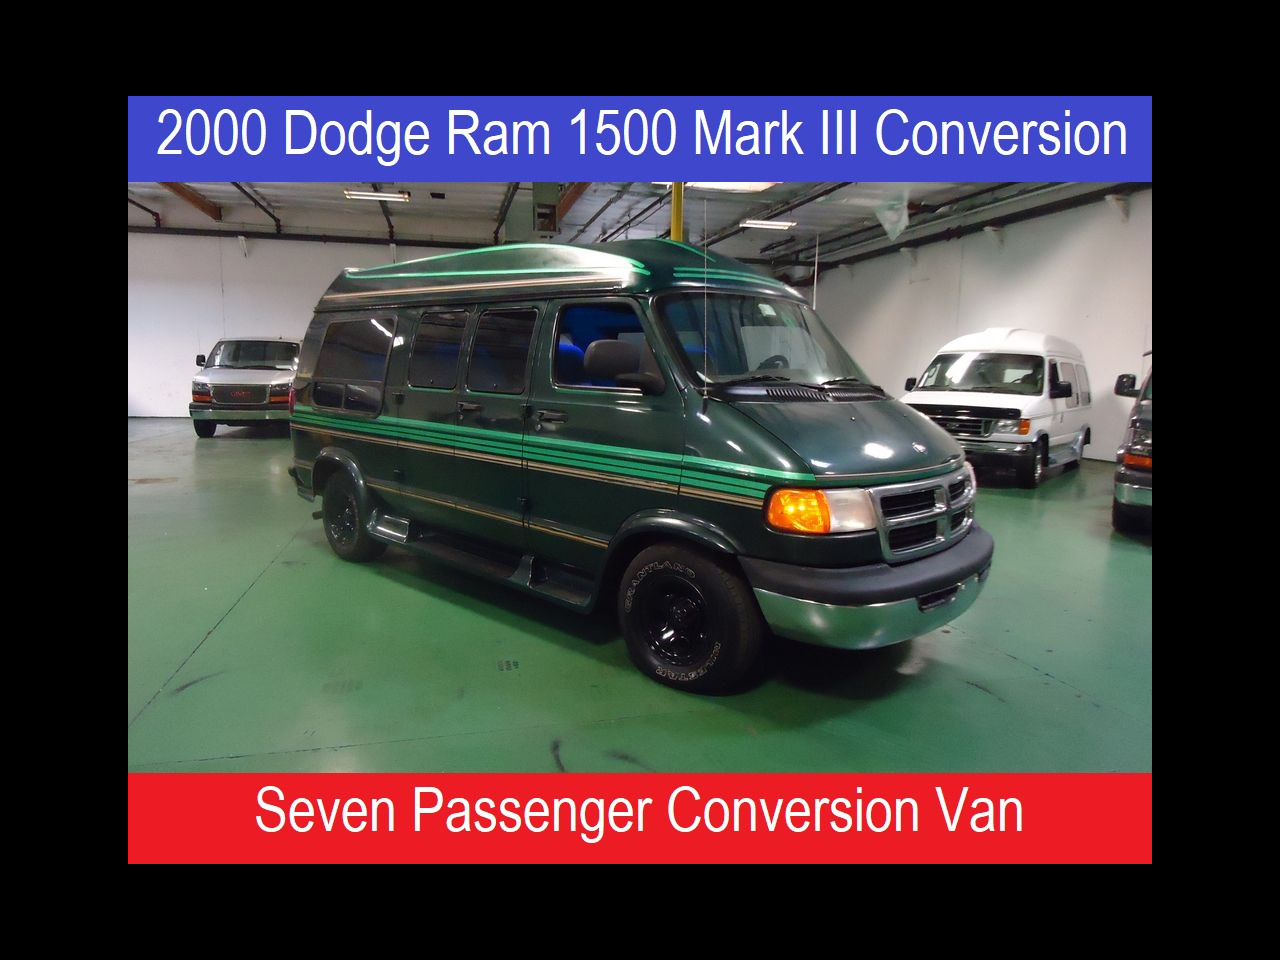 2000 Dodge Ram 1500 Presidential Mark III Conversion Van